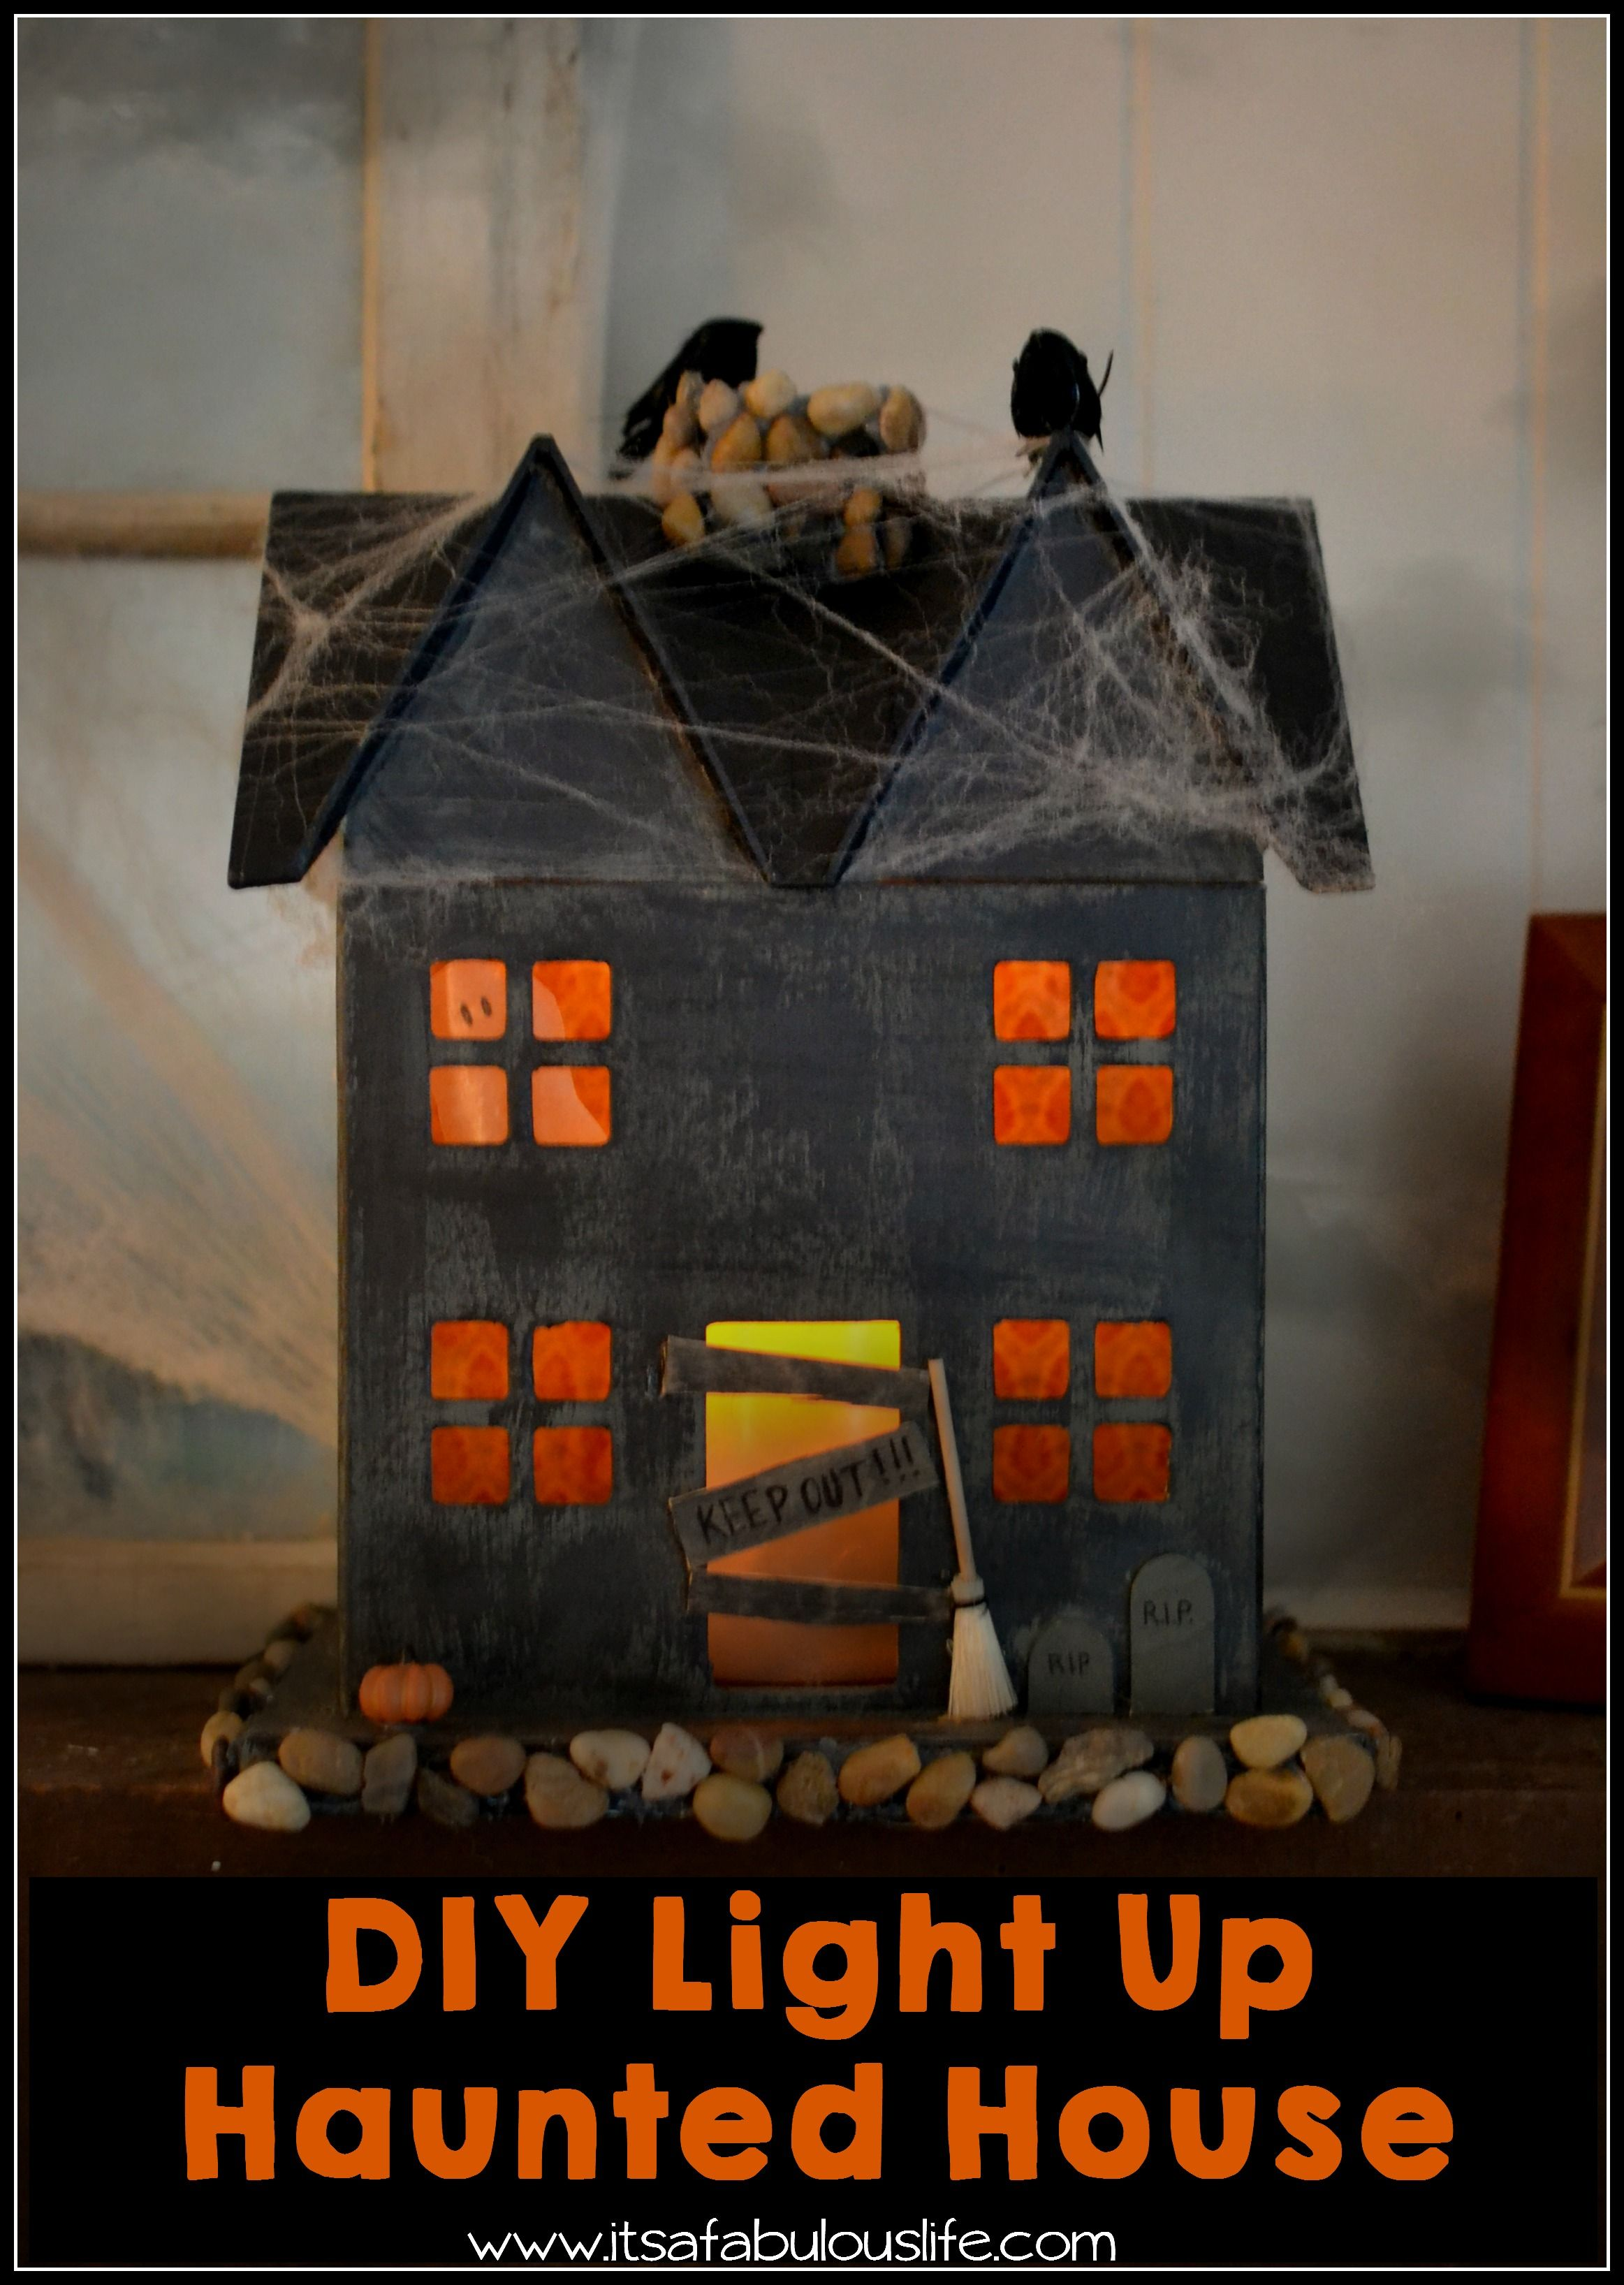 Diy Light Up Haunted House Easy And Fun Halloween Craft This